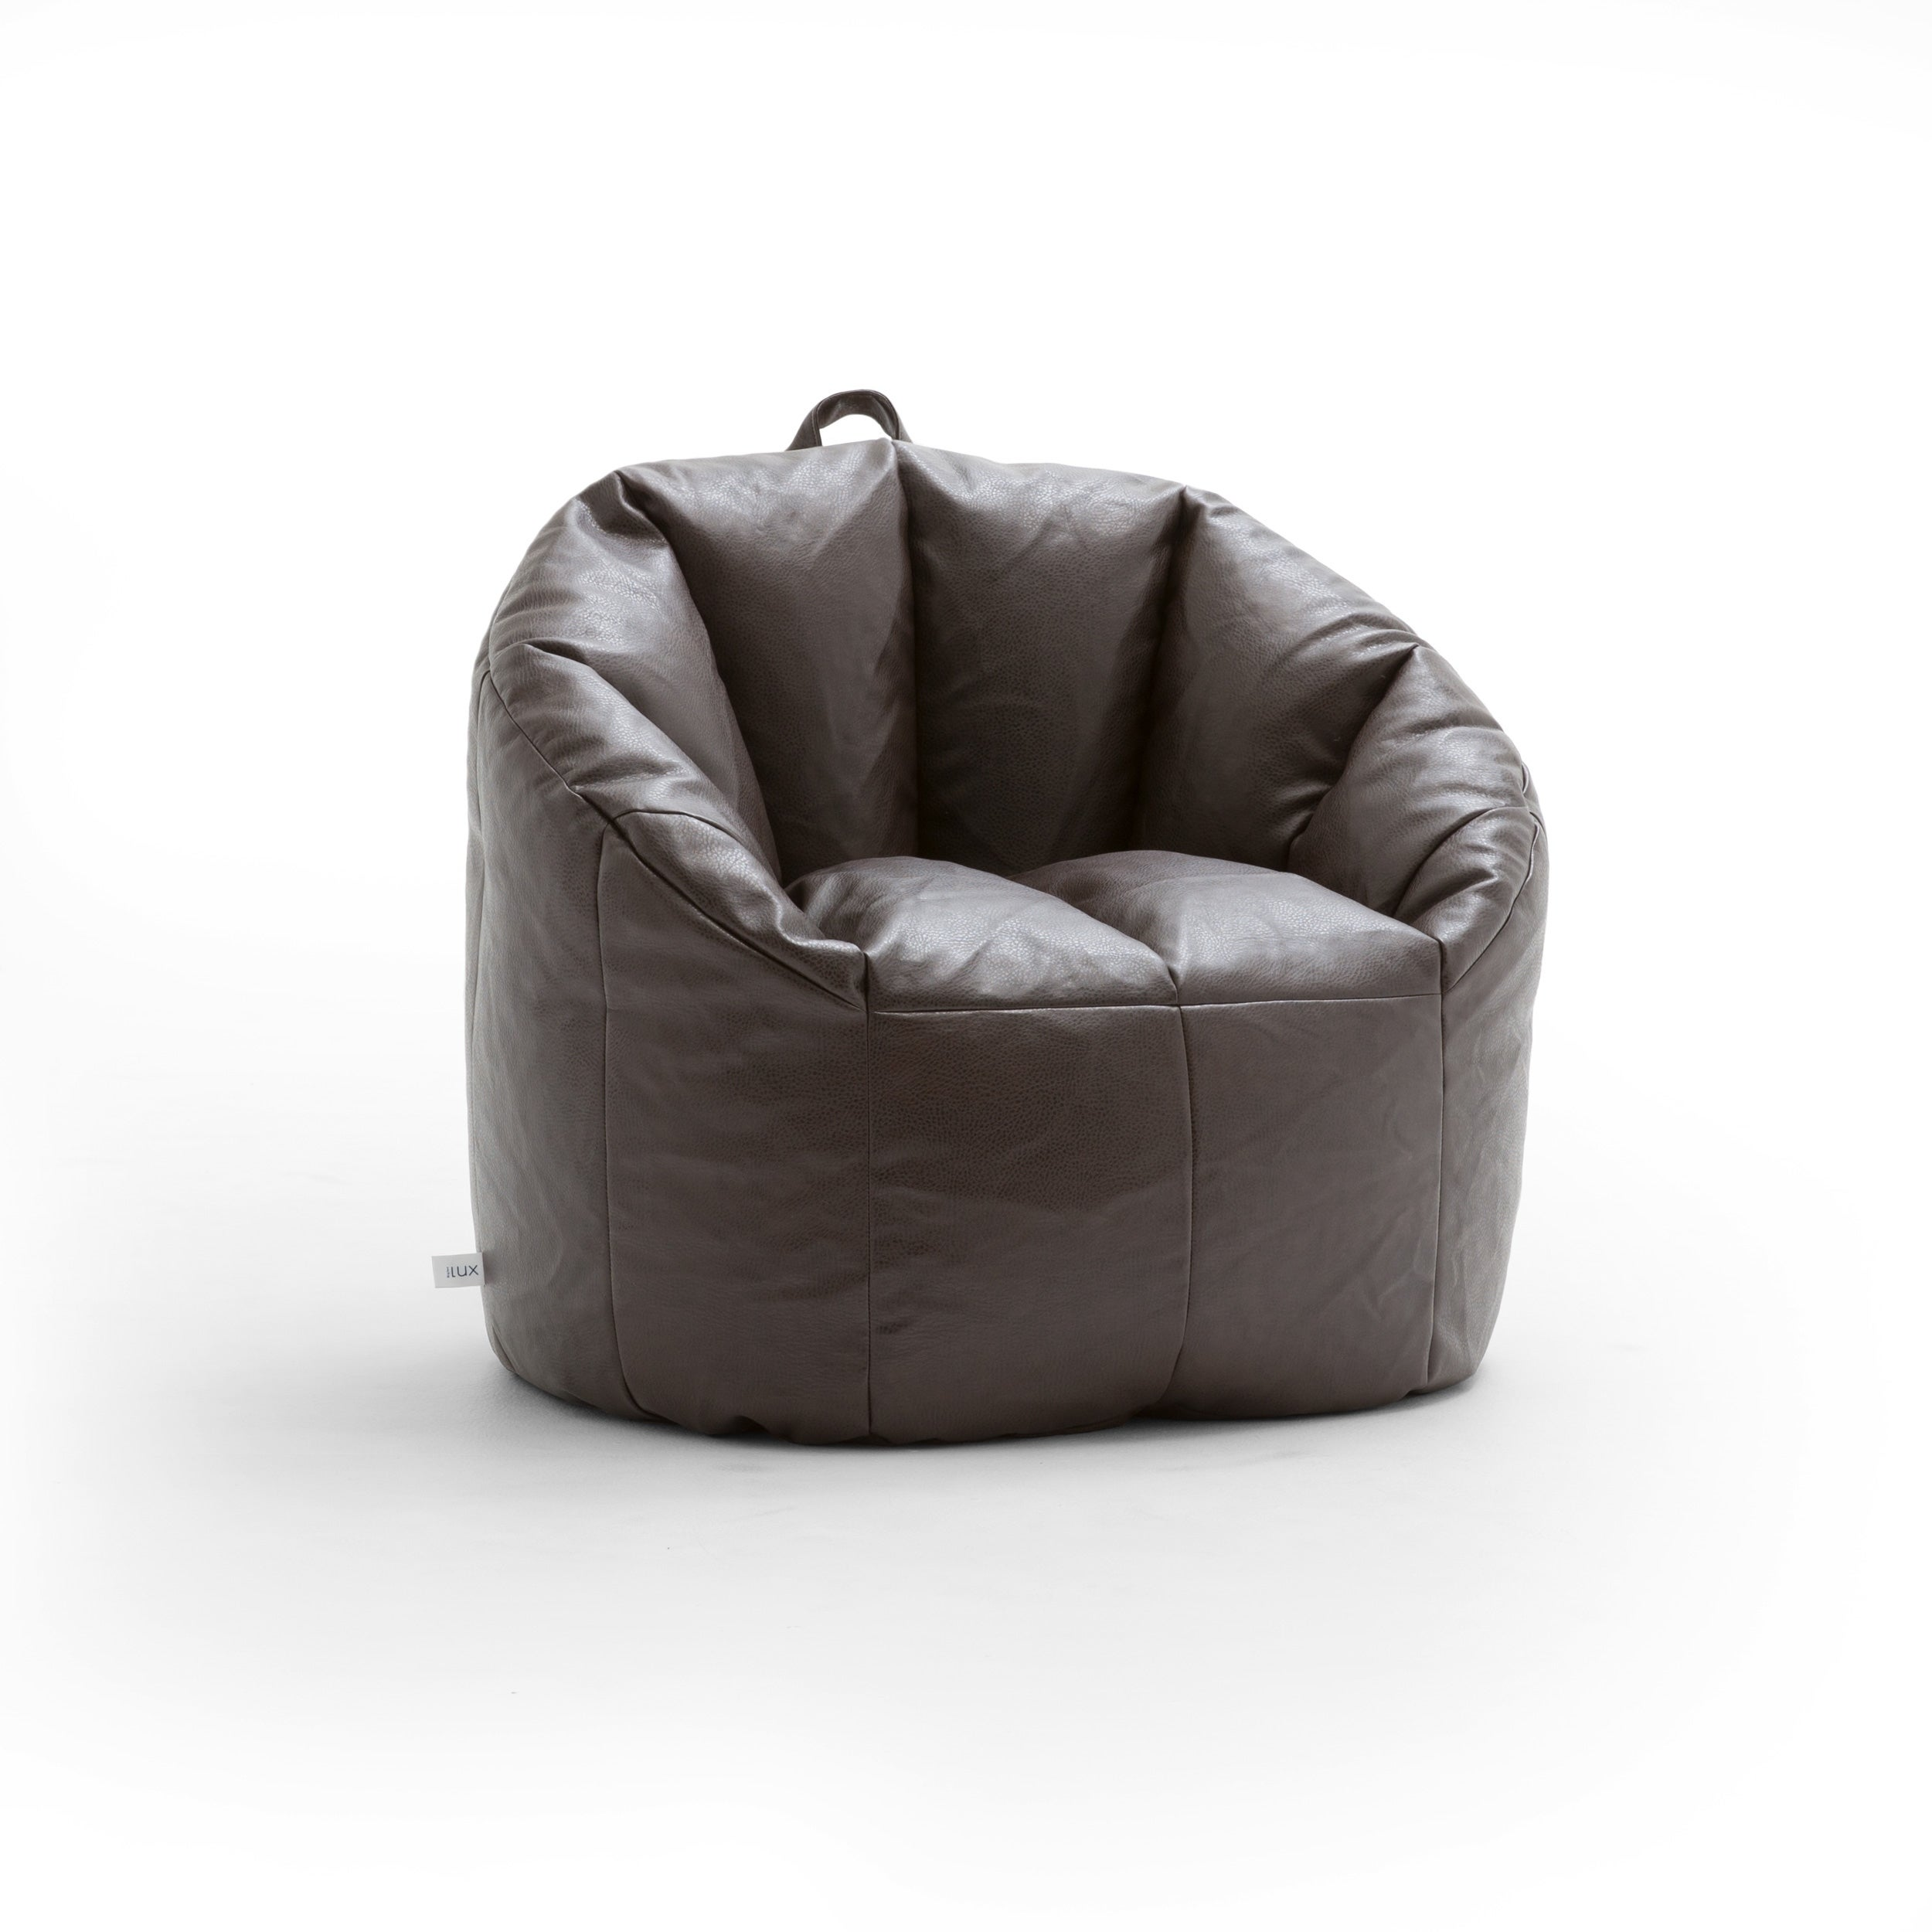 Joe Lux Milano Vegan Leather Bean Bag Chair Multiple Colors On Free Shipping Today 9536758